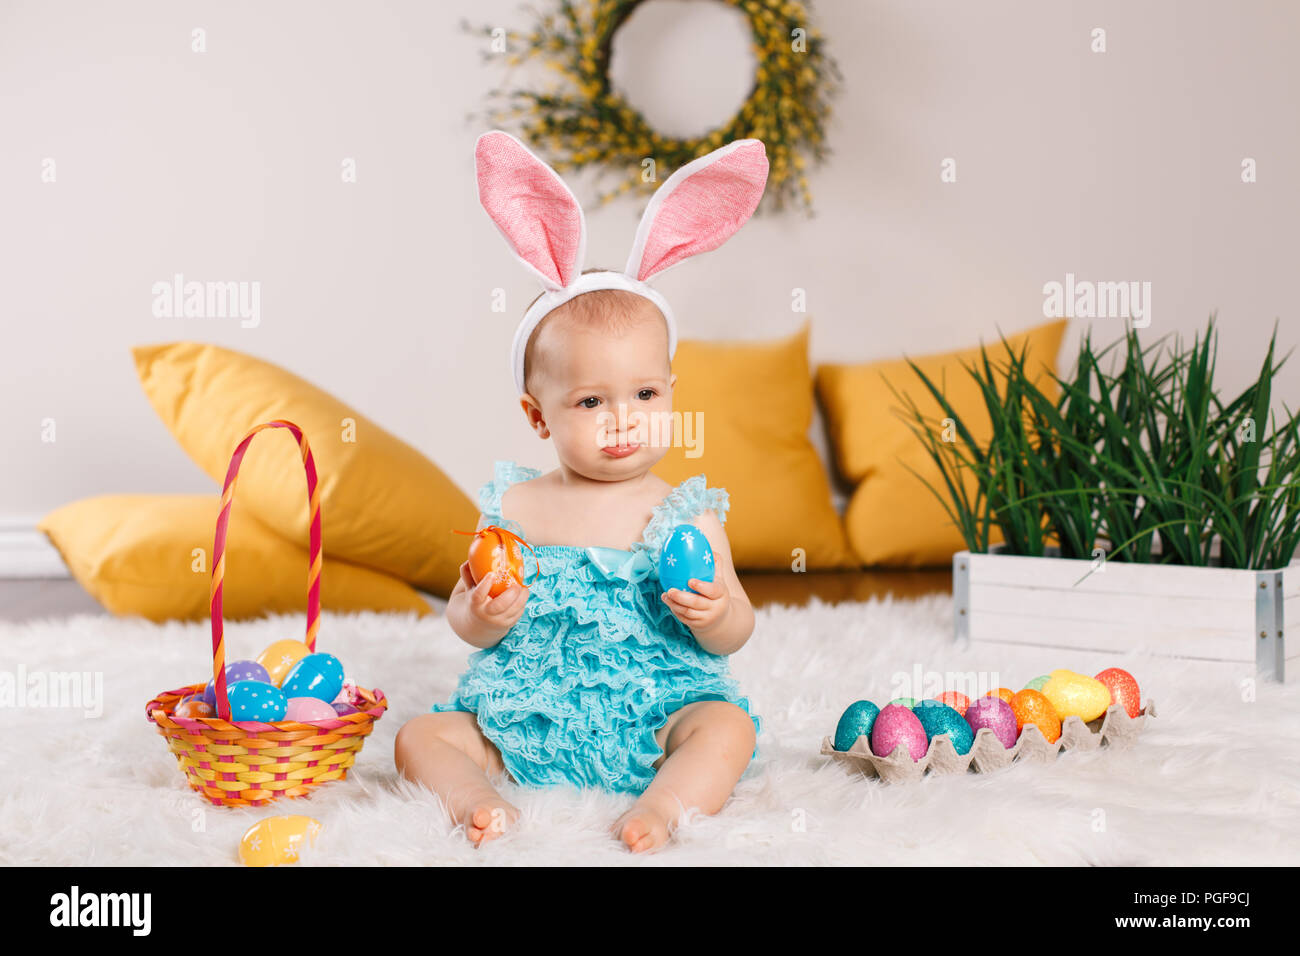 a5ef0e3d603 Cute adorable Caucasian baby girl in blue green romper wearing bunny ears  sitting in studio. Kid child playing with Easter colorful eggs celebrating t